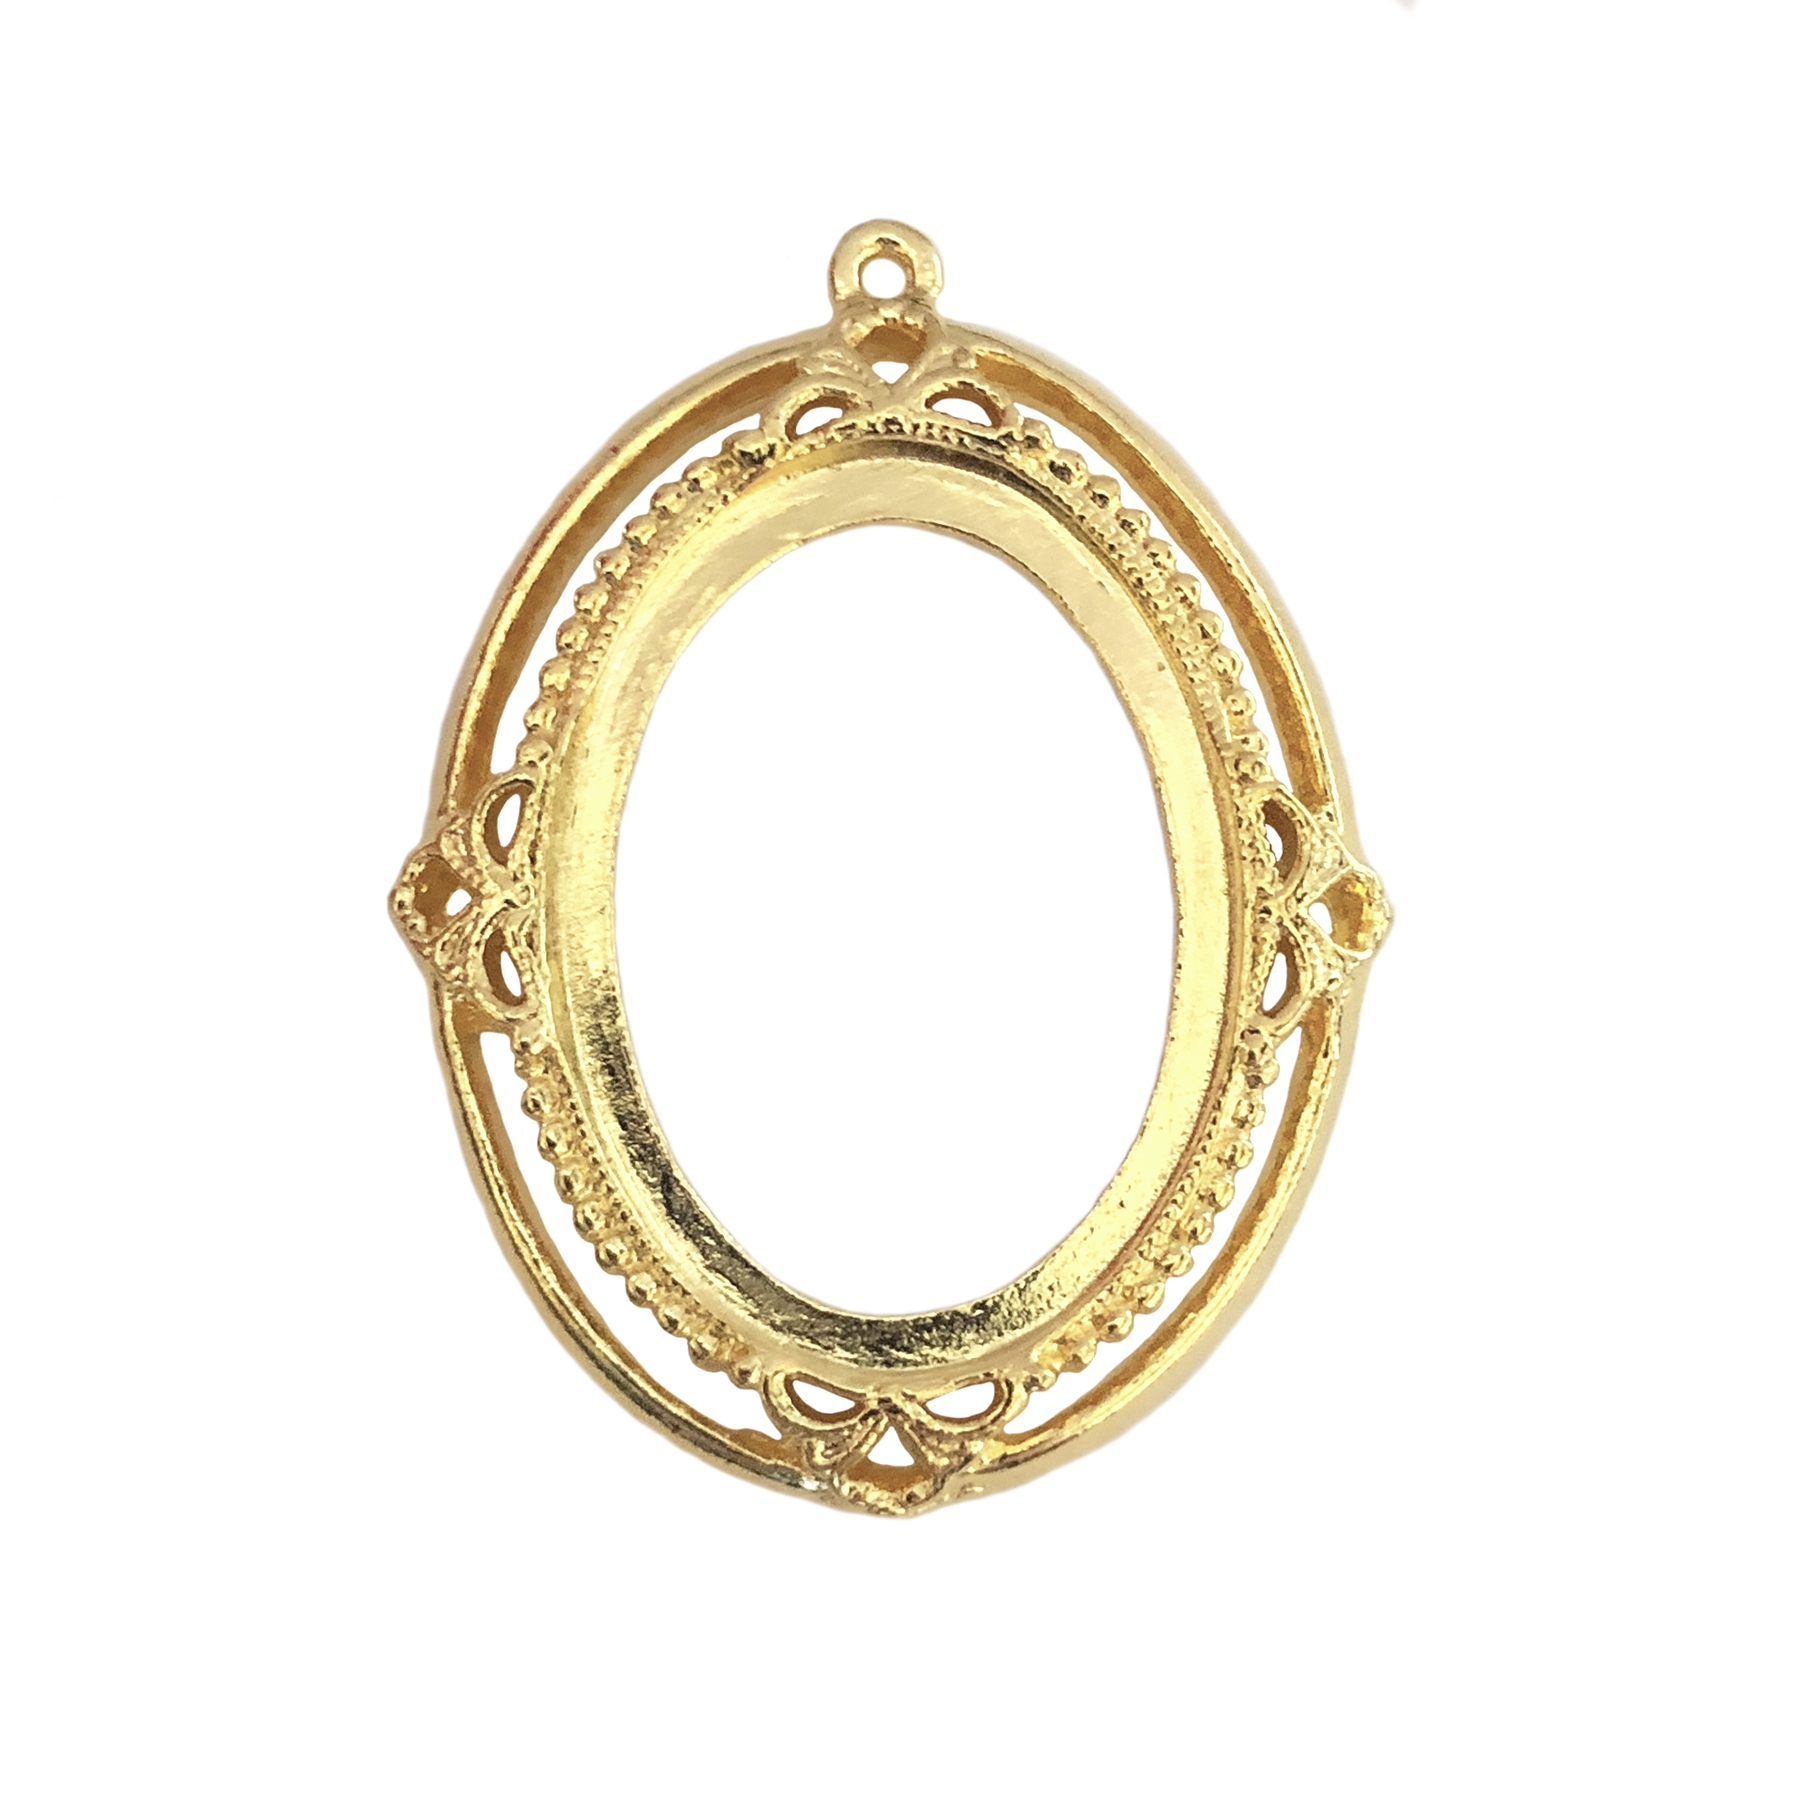 Victorian backless bezel,22k gold finished pewter, cameo mount, 25x18mm mount, Victorian, B'sue by 1928, lead free pewter, pewter castings, cast jewelry parts, vintage, cameo mount, plated jewelry castings, us made, 1928 Jewelry, B'sue Boutiques, 0440